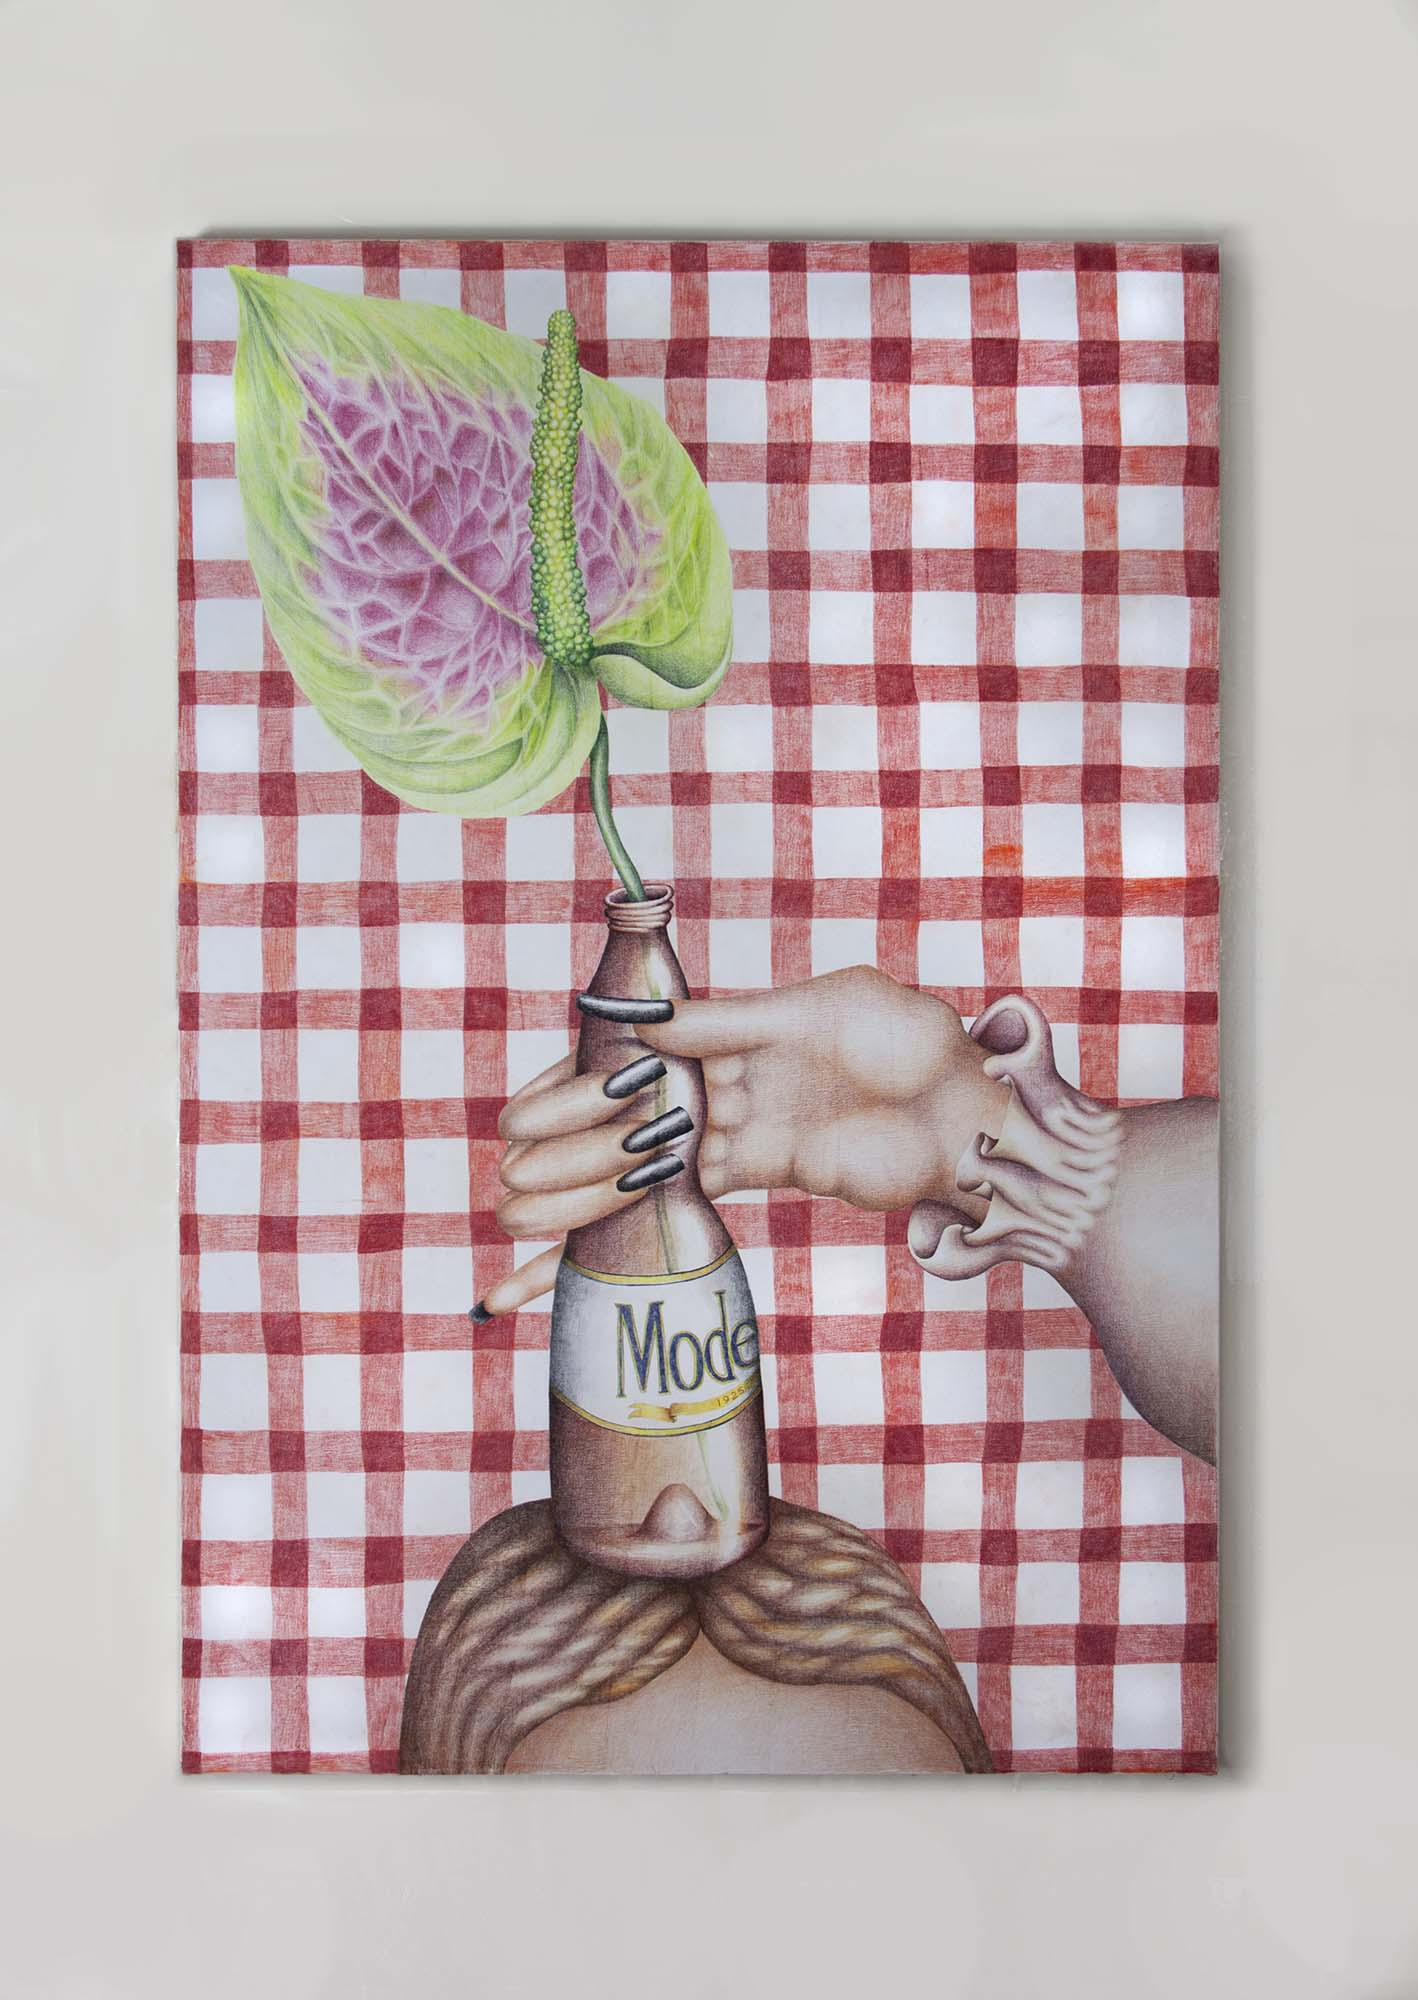 Samantha Rosenwald, Get a Grip, 2018, colored pencil on canvas, 39x58